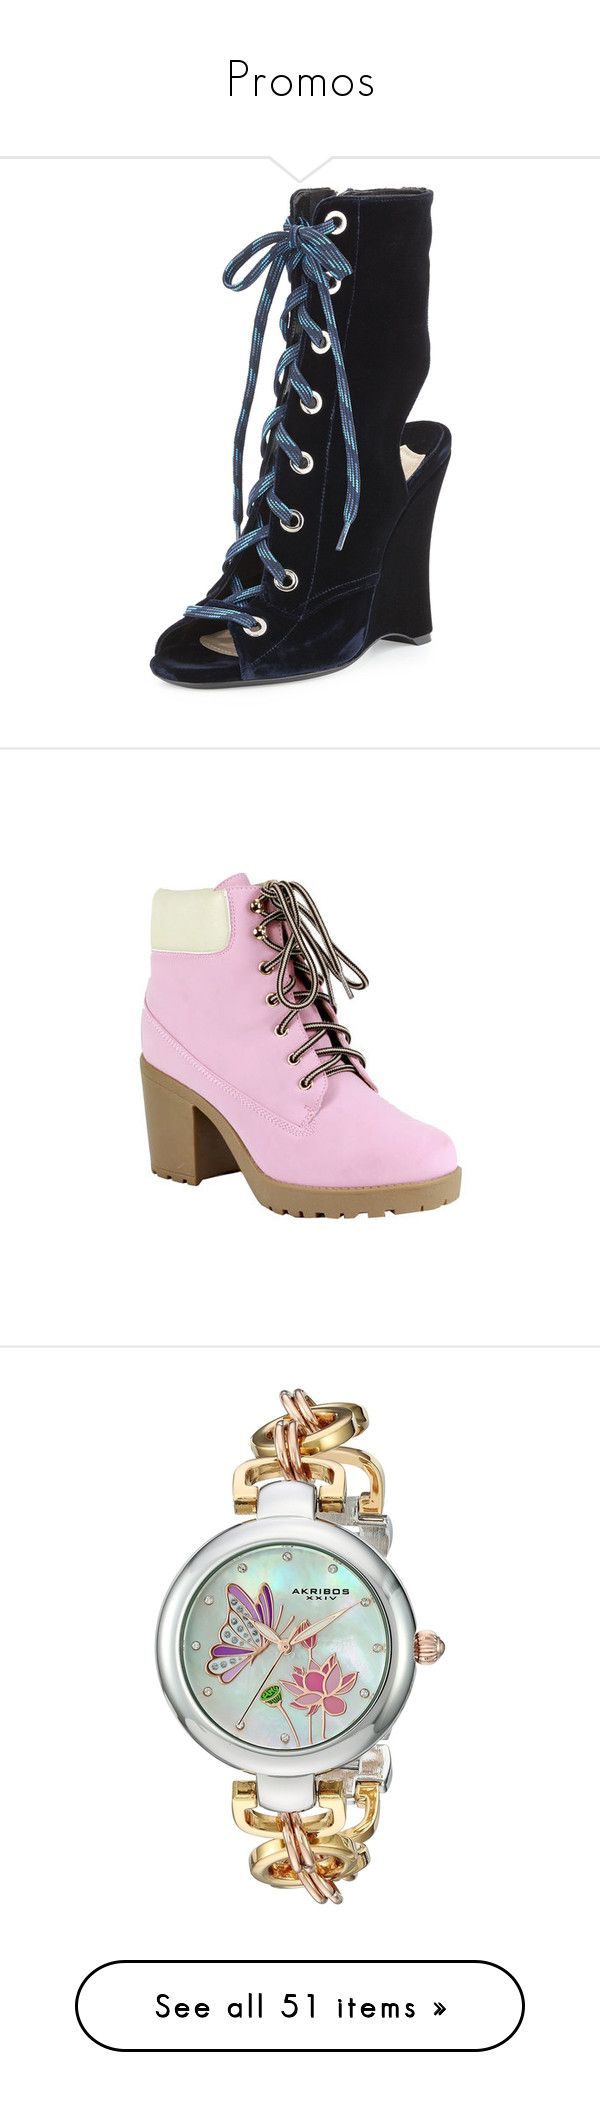 """""""Promos"""" by varsityprincrss ❤ liked on Polyvore featuring shoes, boots, ankle booties, navy, navy ankle boots, velvet ankle boots, wedge booties, ankle boots, open toe wedge booties and booties"""